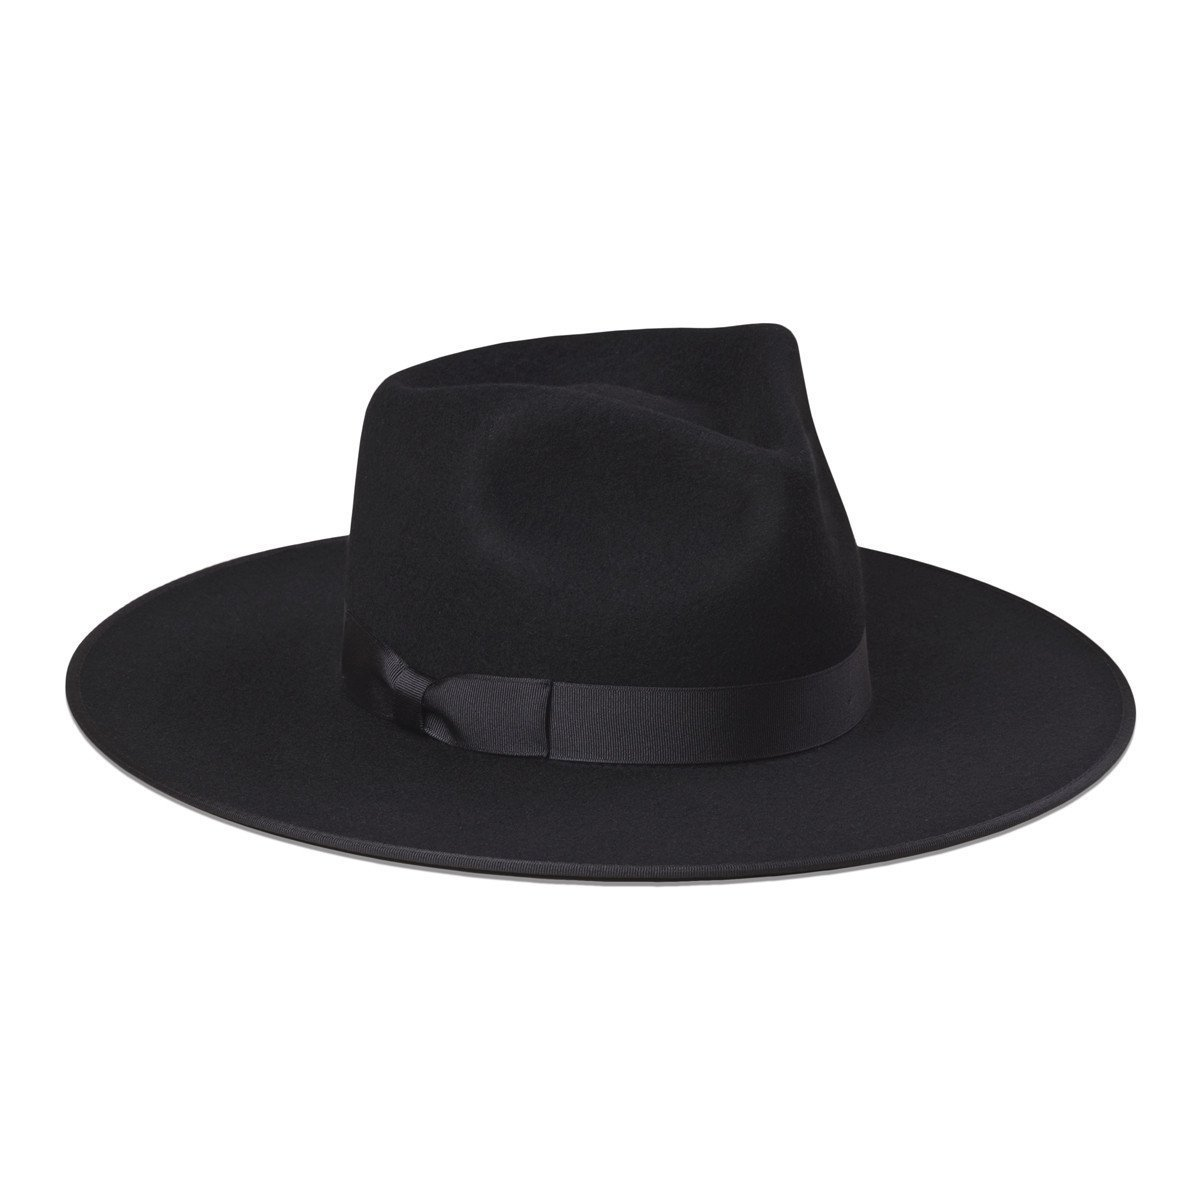 Load image into Gallery viewer, Noir Rancher Hat by Lack of Color Hats